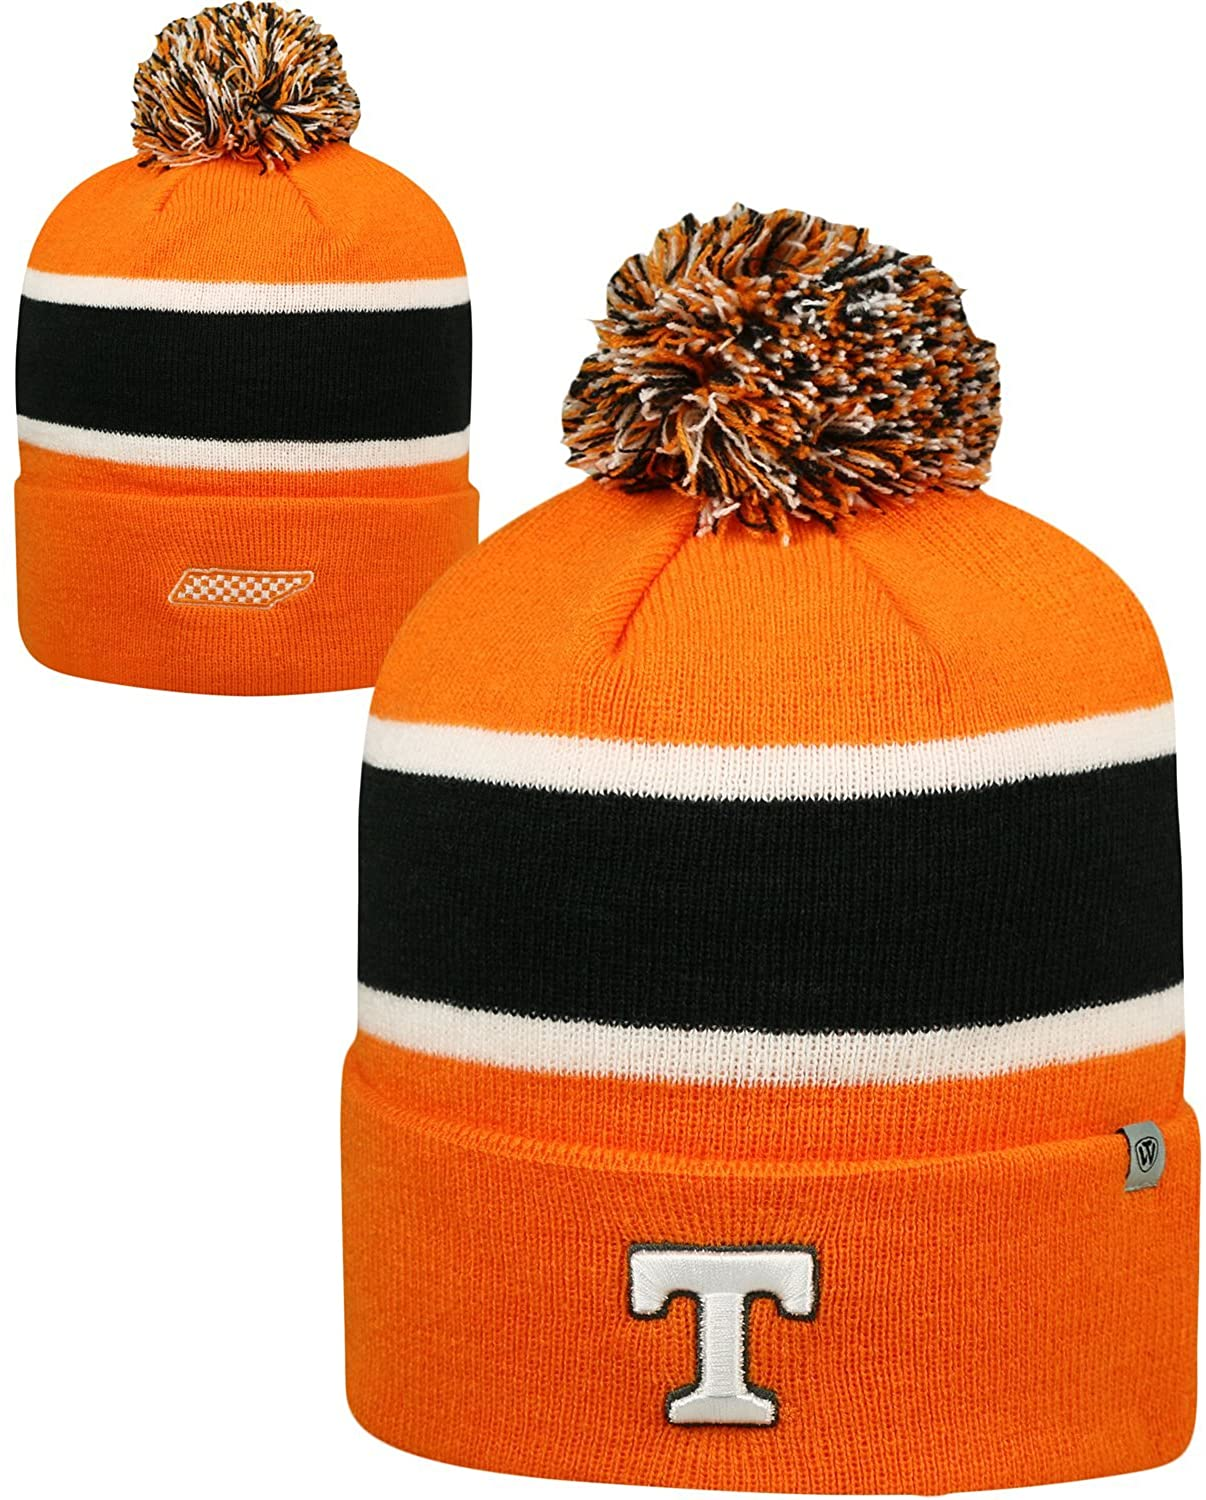 Top of the World Tennessee Volunteers Whirl Cuffed Pom Knit Beanie Hat/Cap